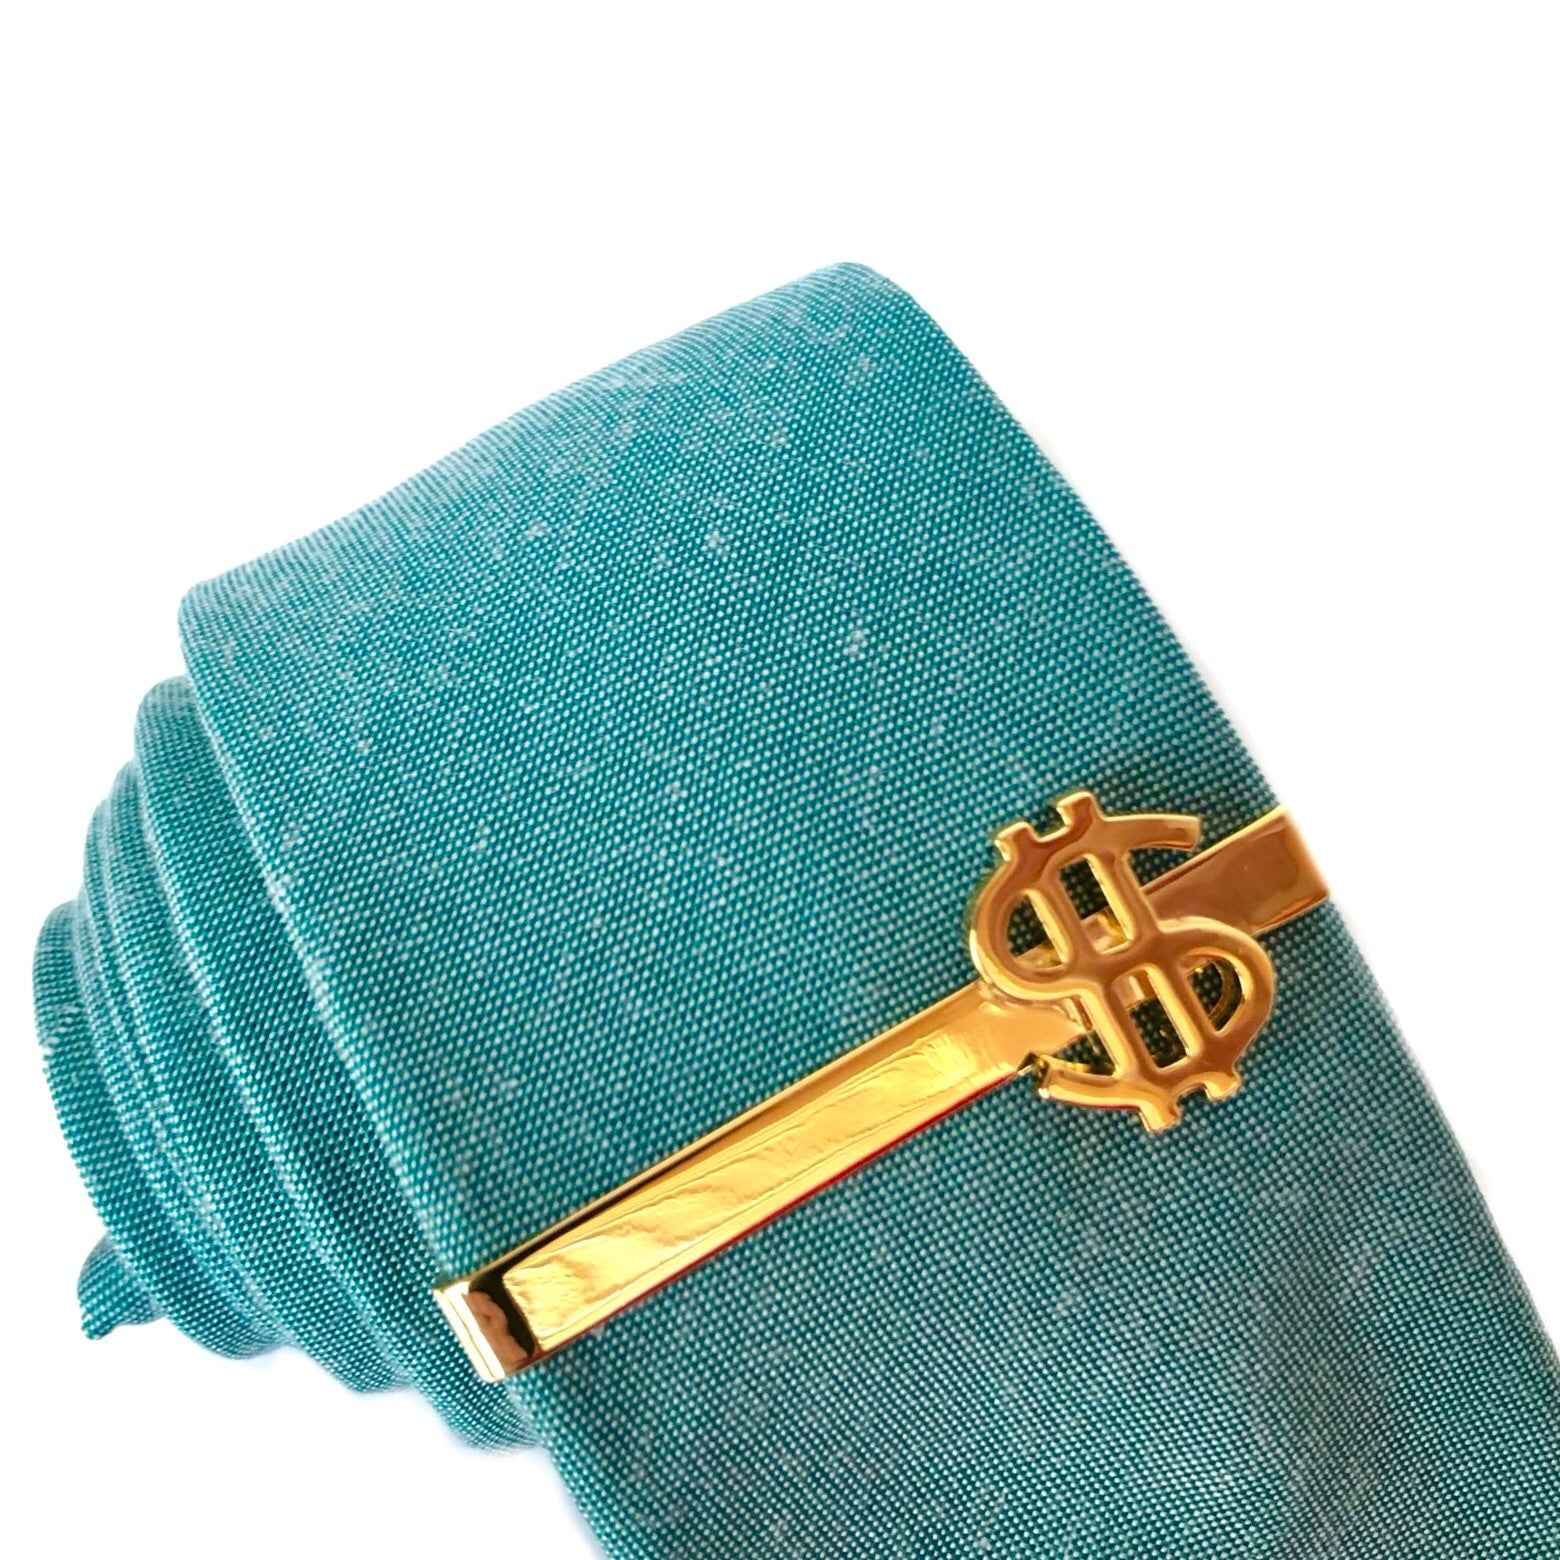 Mason Money Tie Clip